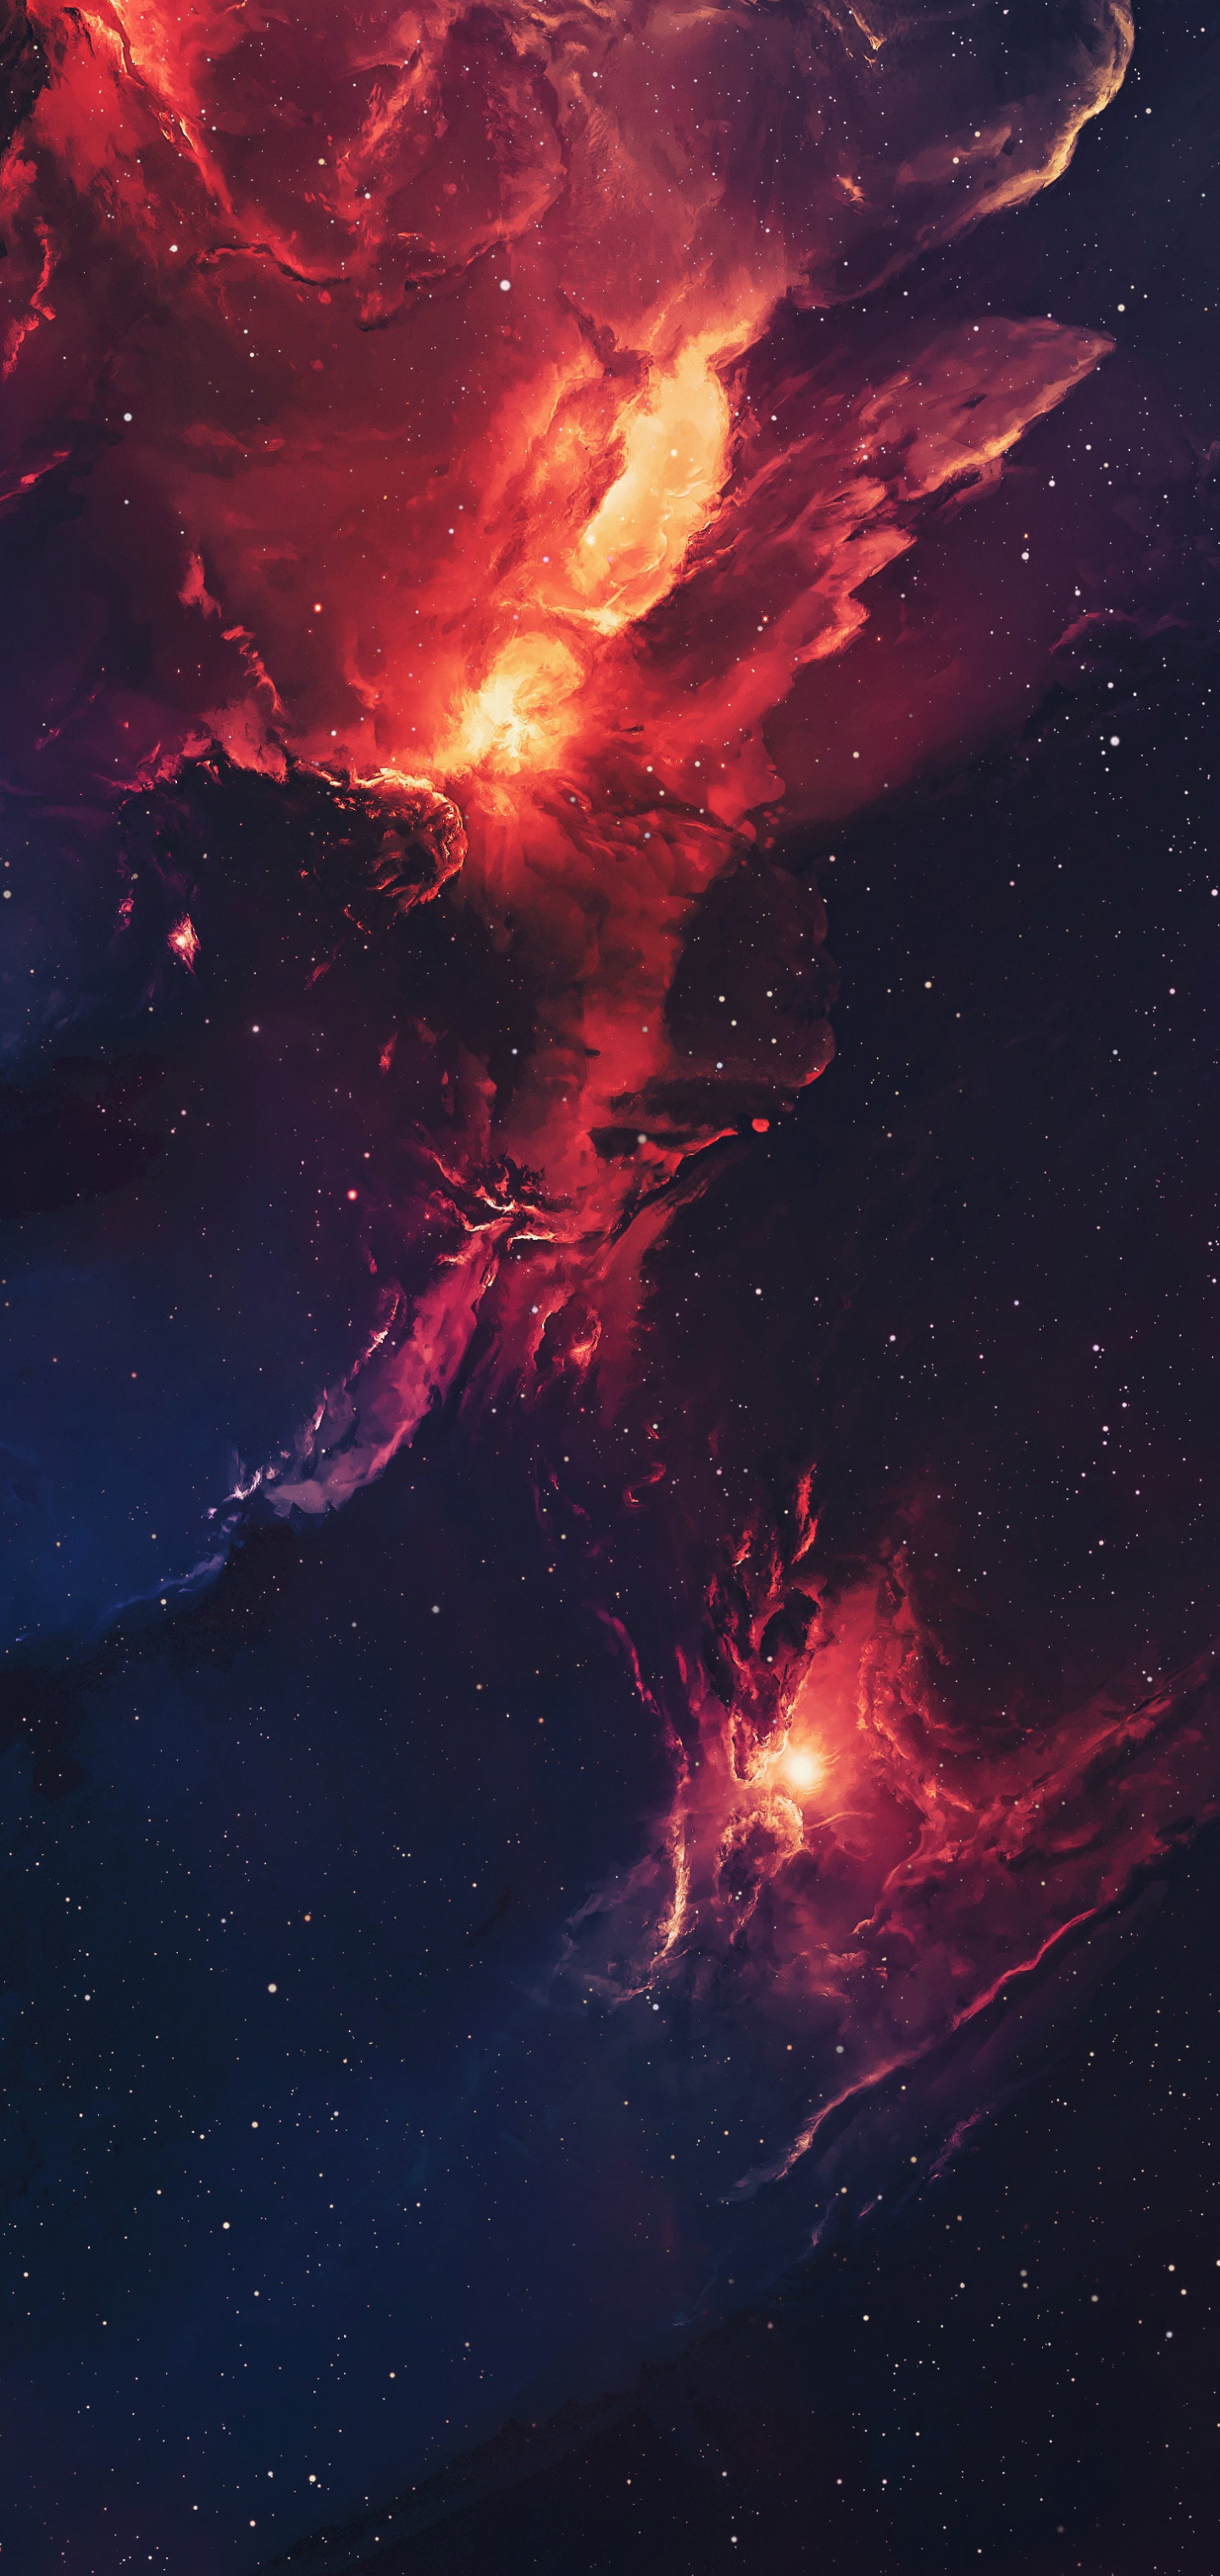 Best Wallpaper For Iphone 11 Pro Max Ytechb Com Wallpaper Space Space Phone Wallpaper Trippy Wallpaper